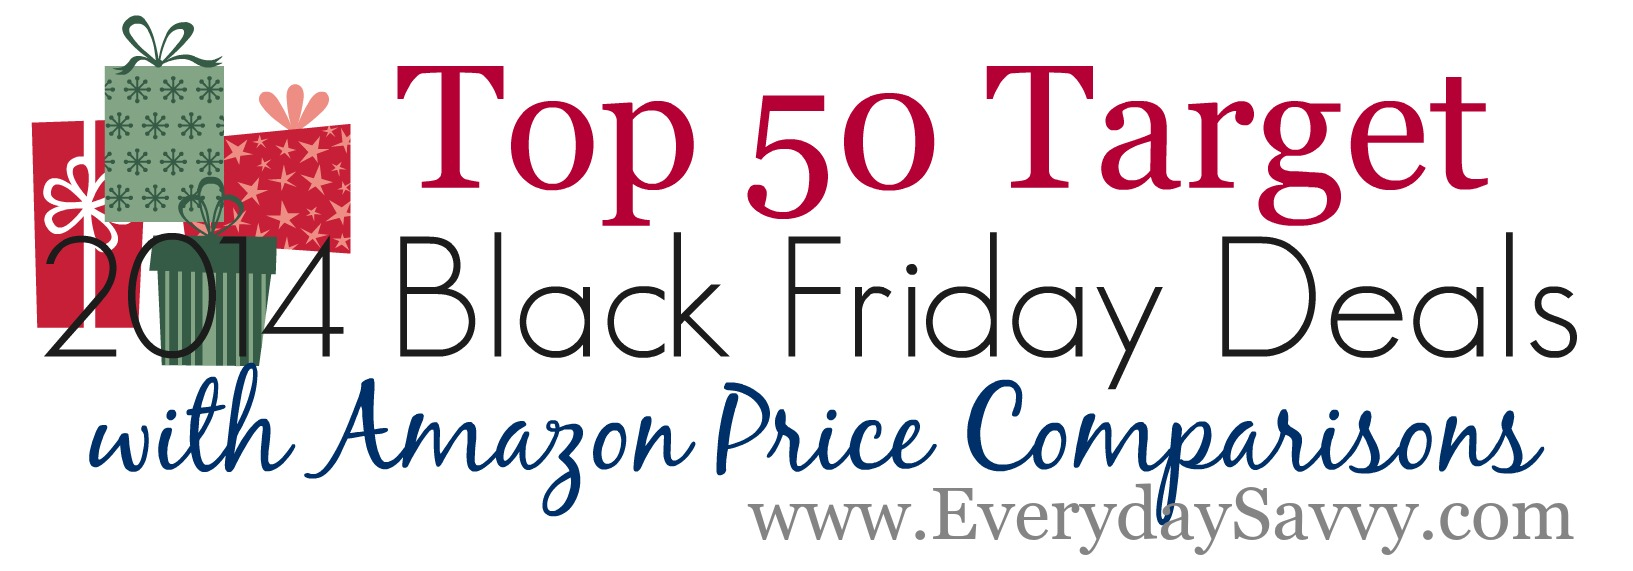 Top 50 Target Black Friday Deals and Amazon price comparisons